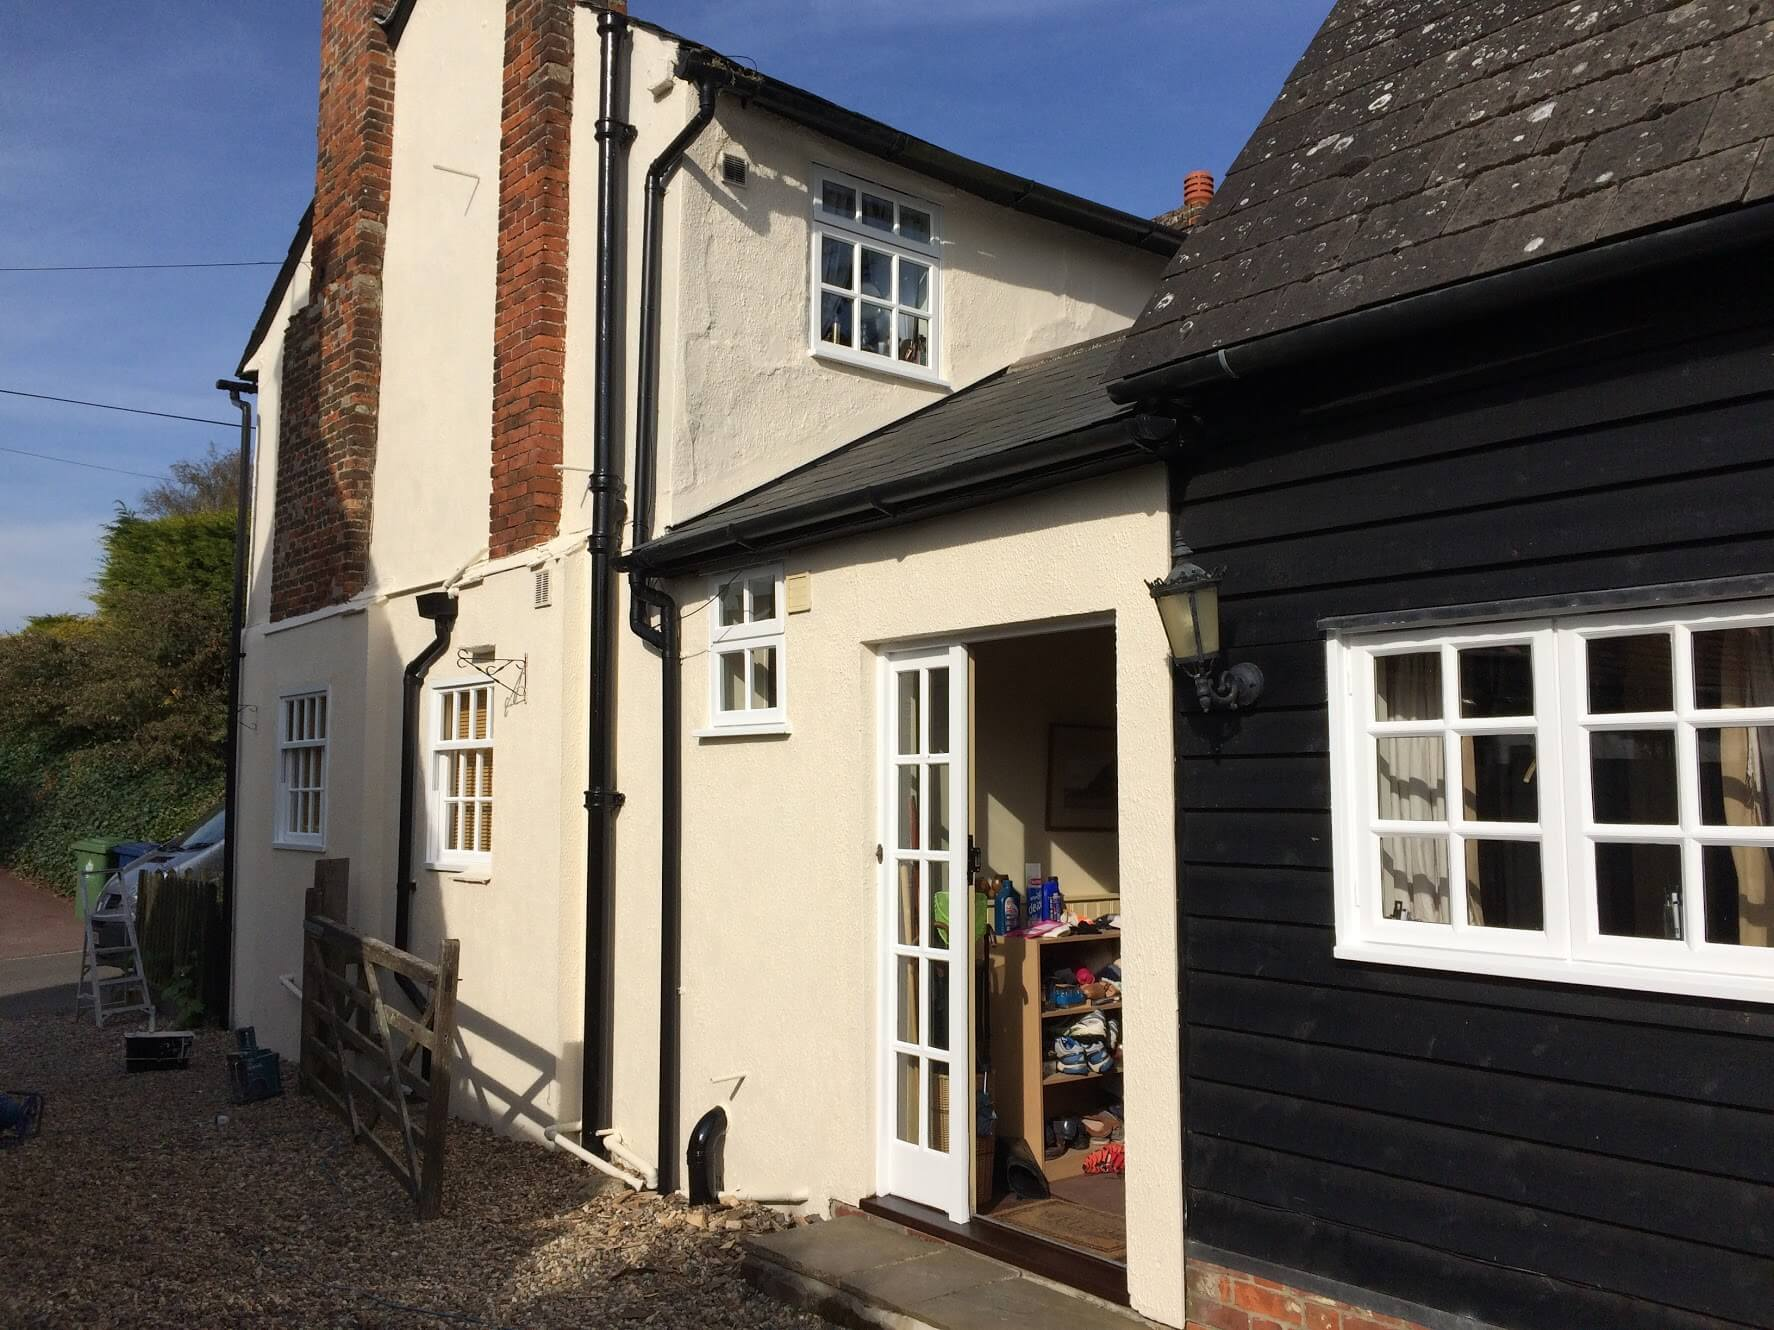 Renovation of decayed timber windows and repairs of masonry walls in a listed property in Great Chishill, Cambridge